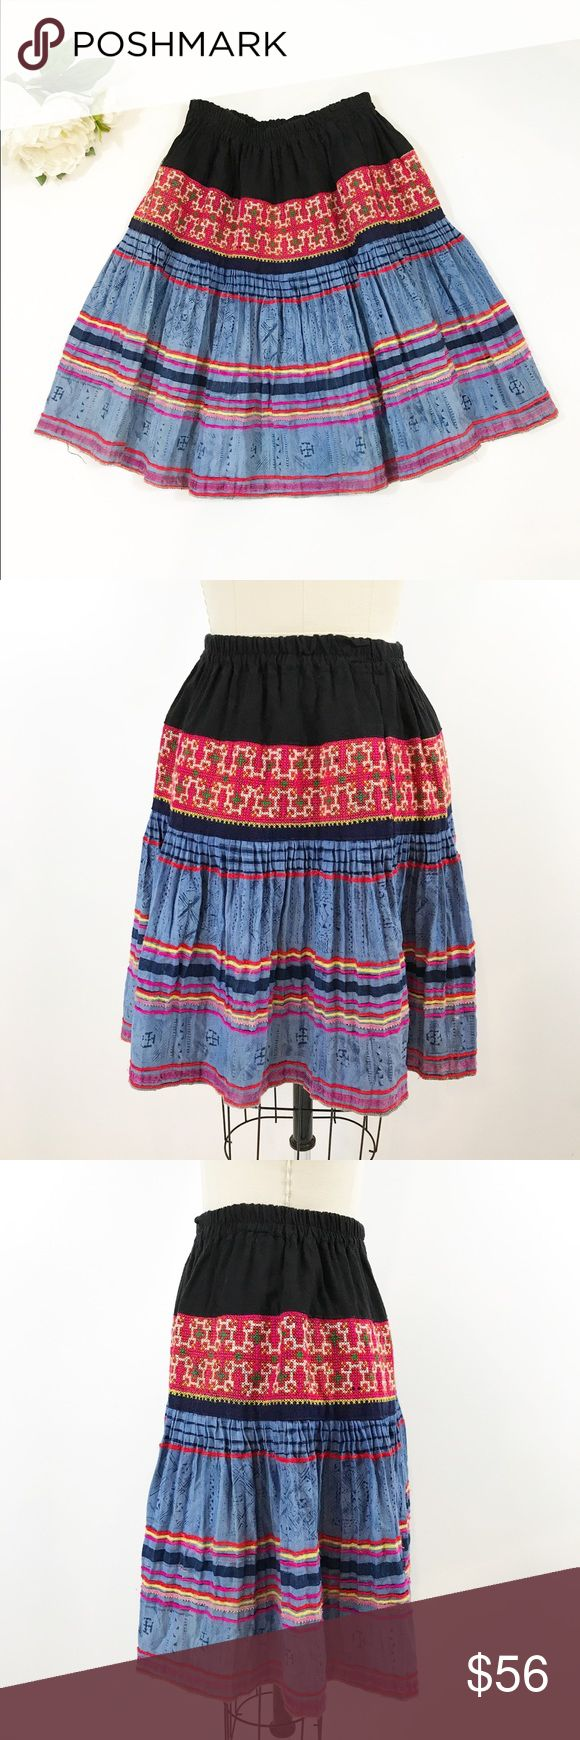 """⭐️ NEW ARRIVAL Vintage Patchwork Skirt Colorful I'm in love with this patchwork vintage skirt. Beautiful panels of embellished and stamped fabric, bright colors and tempered by the solid black top. Fabulous!! Wear it with a black top and red shoes or a white tee and sandals. Waistband is elastic, measures 24"""" unstretched to about 32"""" comfortably. Length 20.5"""". Very good condition, no noted issues. Vintage Skirts"""